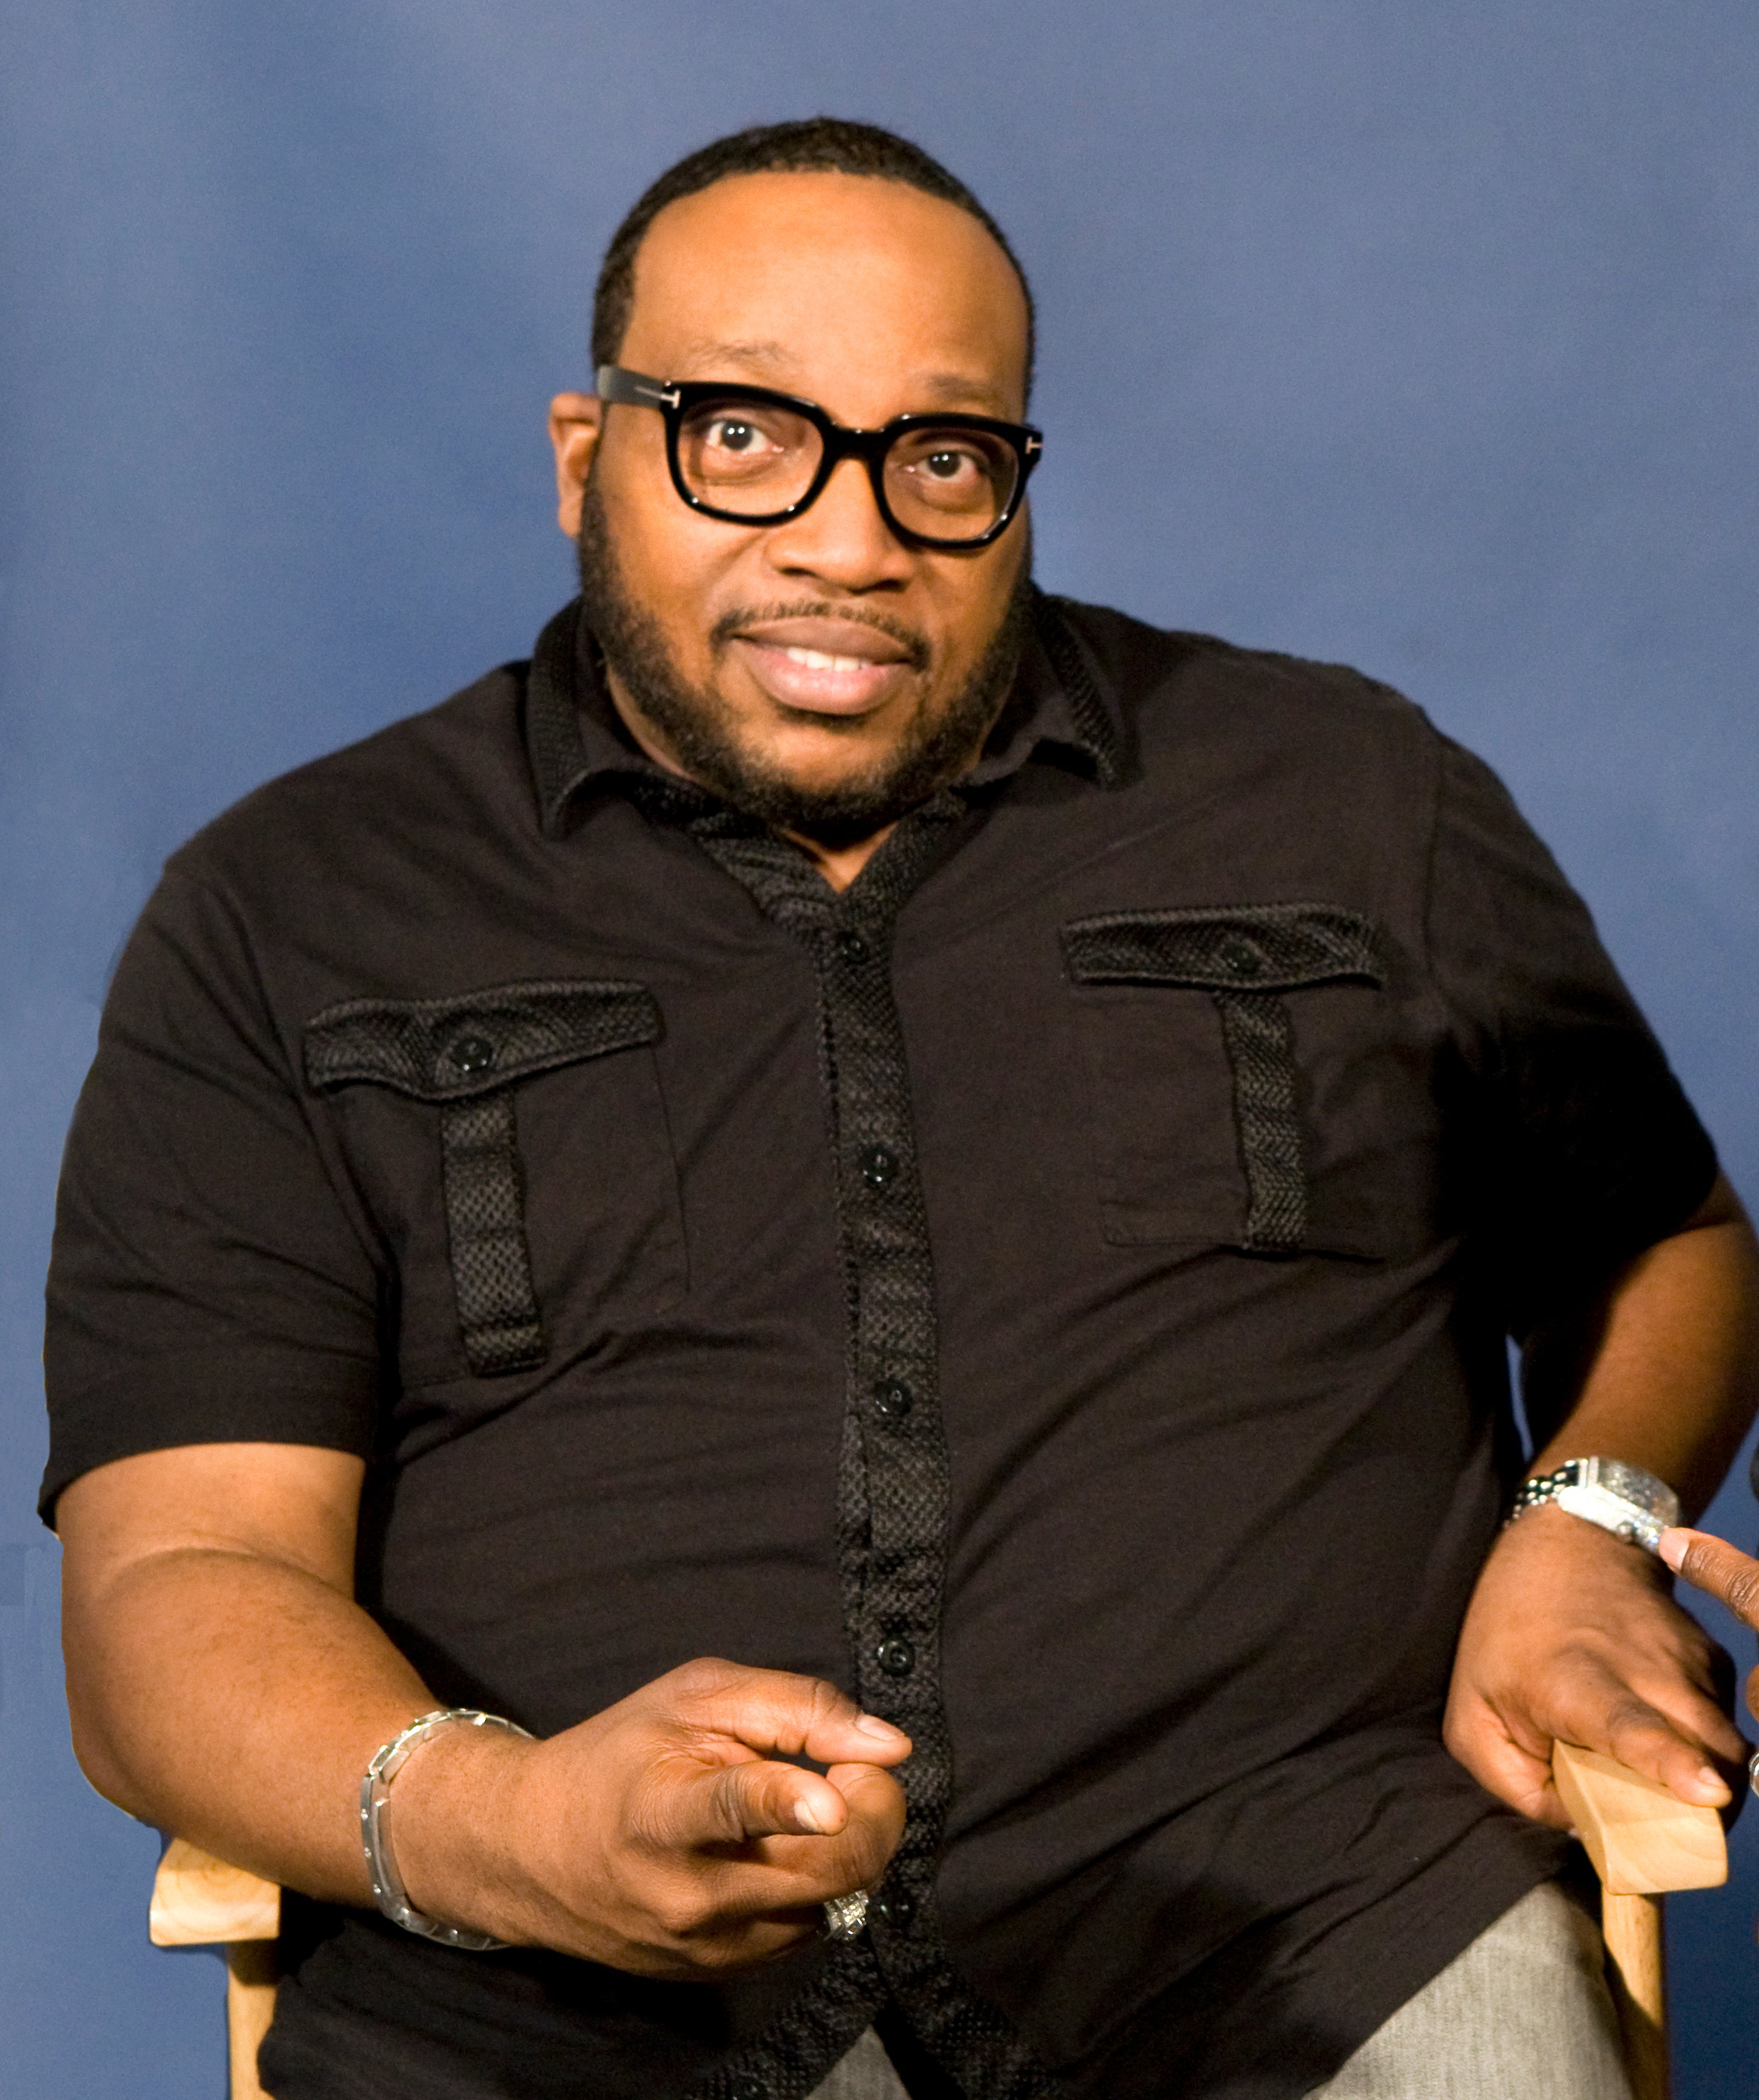 Marvin Sapp Lands Reality Show with His Kids